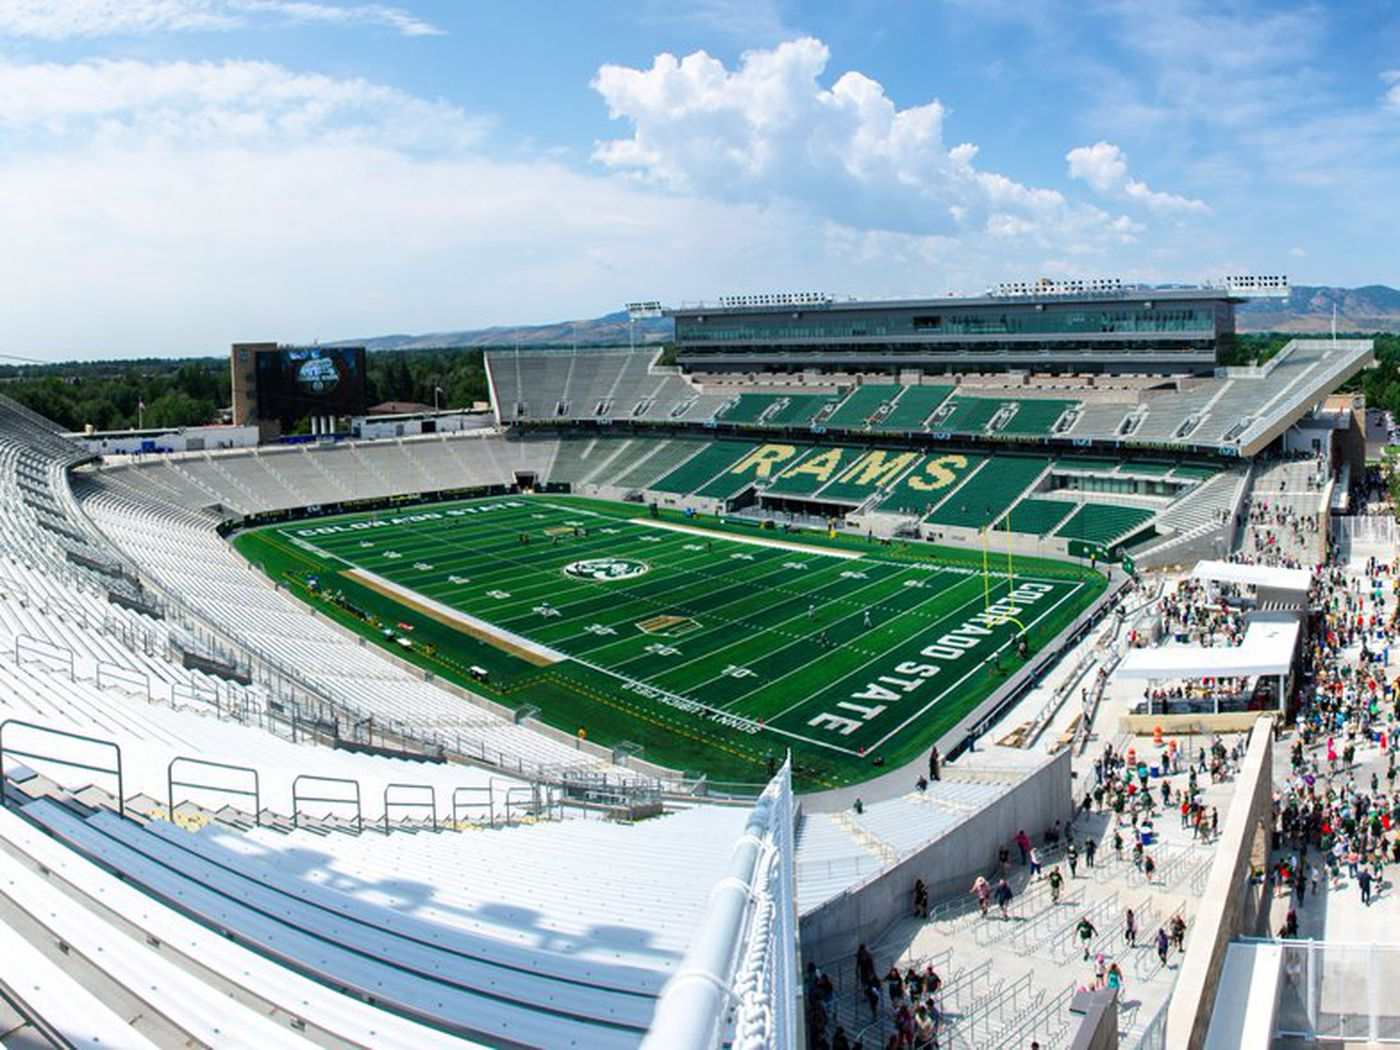 Colorado State S New Stadium Is One Of The Prettiest In College Football Sbnation